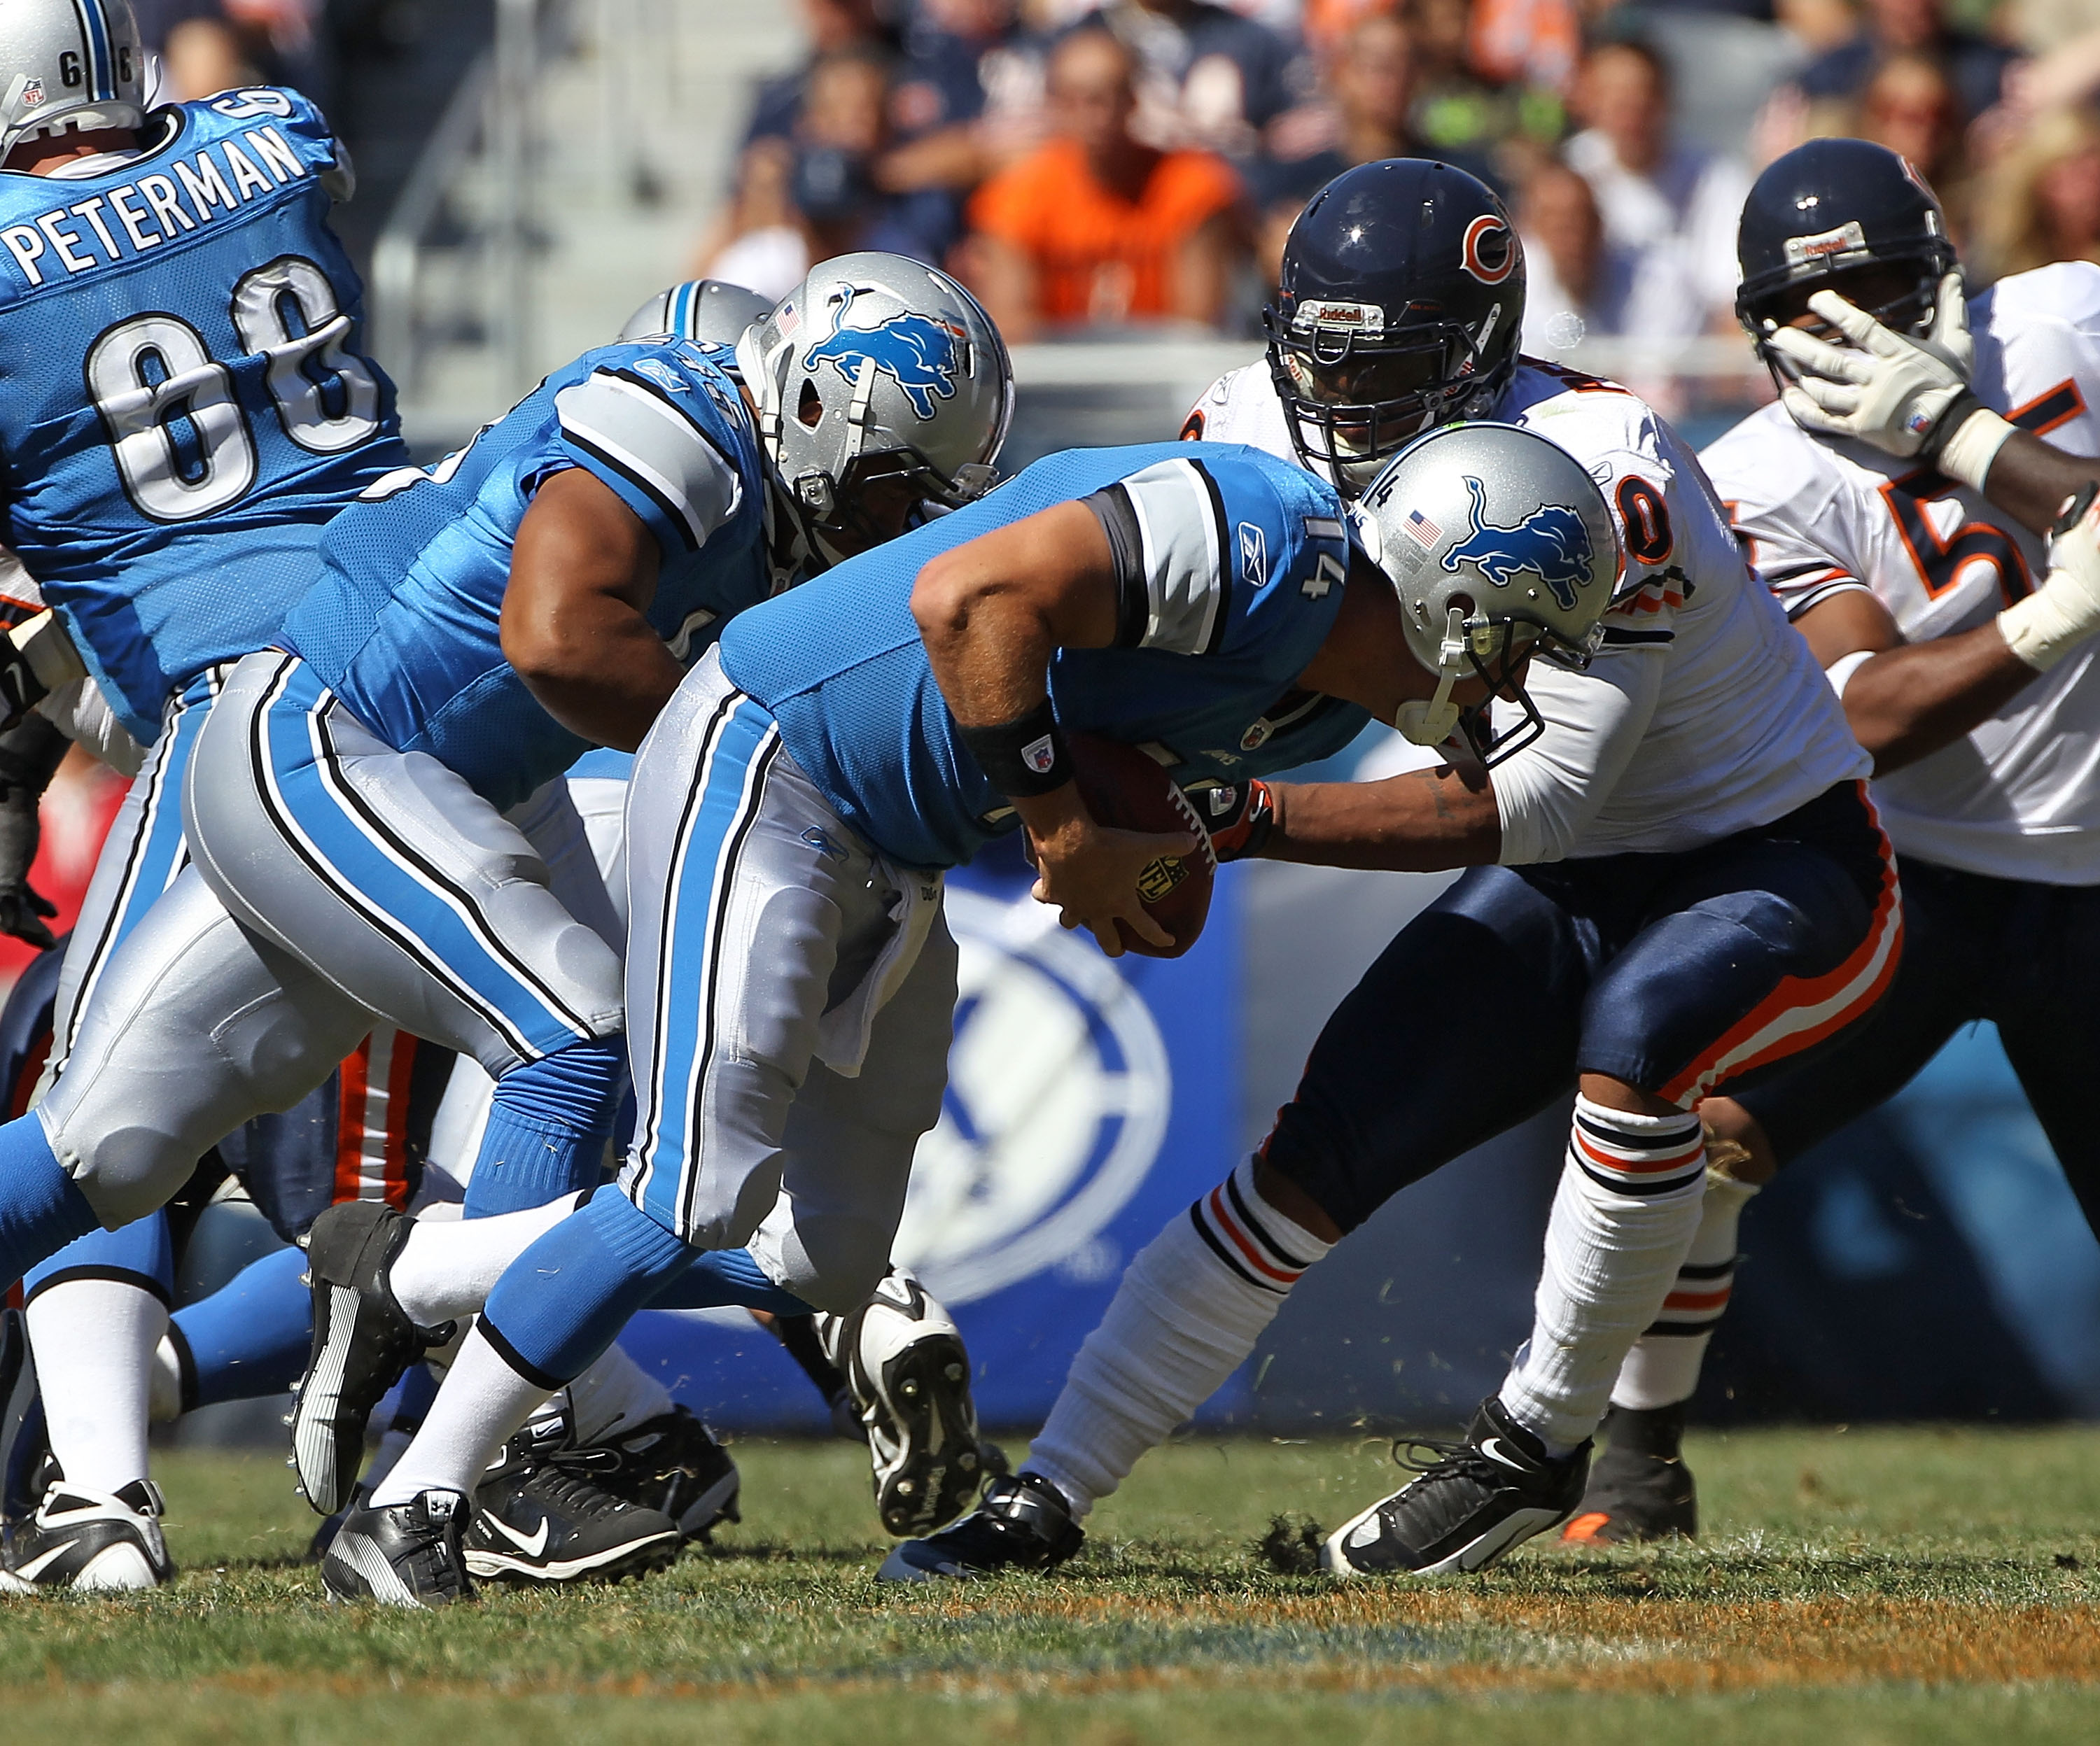 CHICAGO - SEPTEMBER 12: Shaun Hill #14 of the Detroit Lions tries to run after recovering his own fumbled snap as Julius Peppers #90 of the Chicago Bears attempts the tackle during the NFL season opening game at Soldier Field on September 12, 2010 in Chic